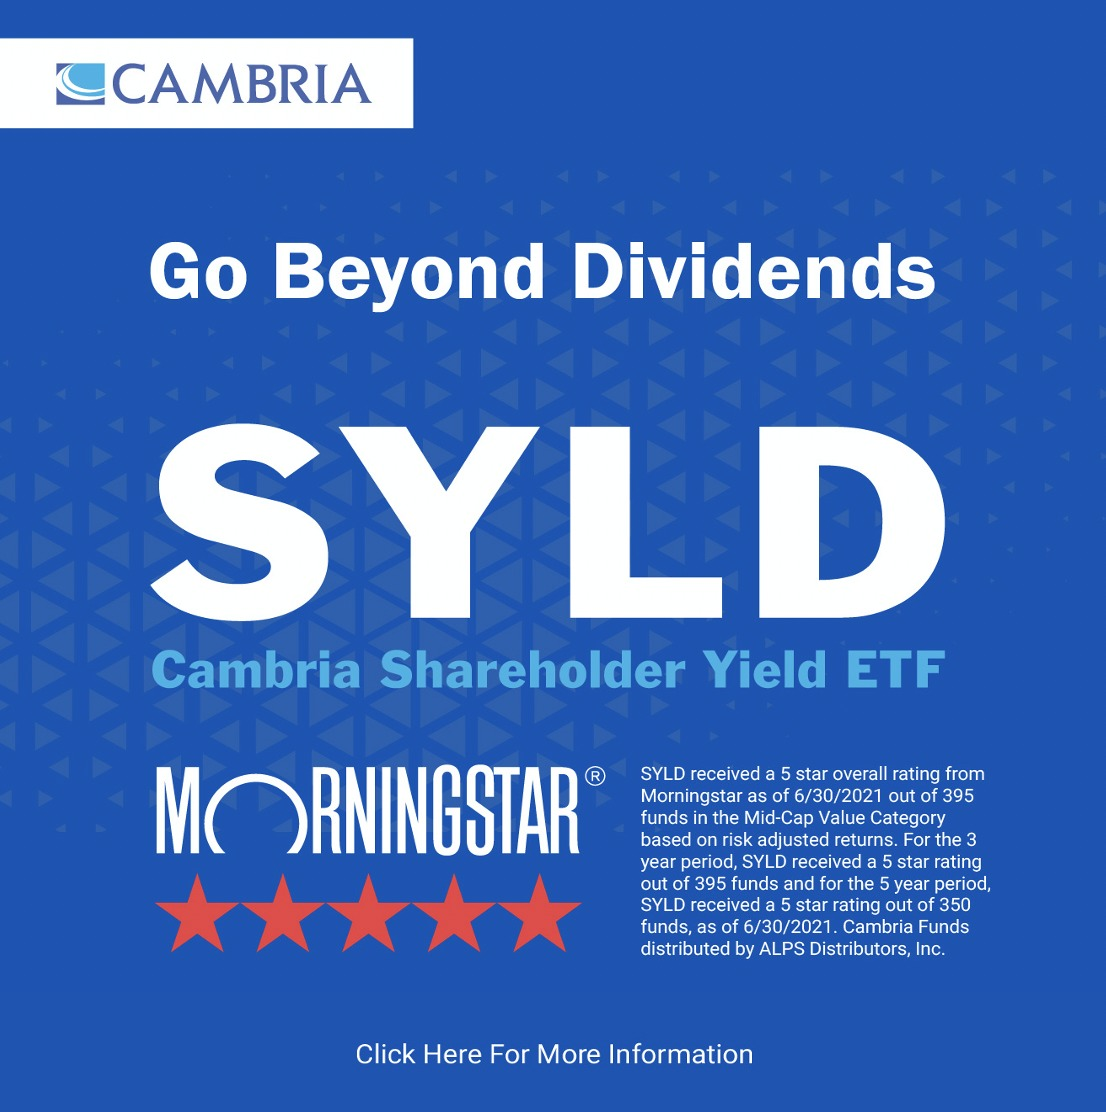 SYLD Cambria Shareholder Yield ETF